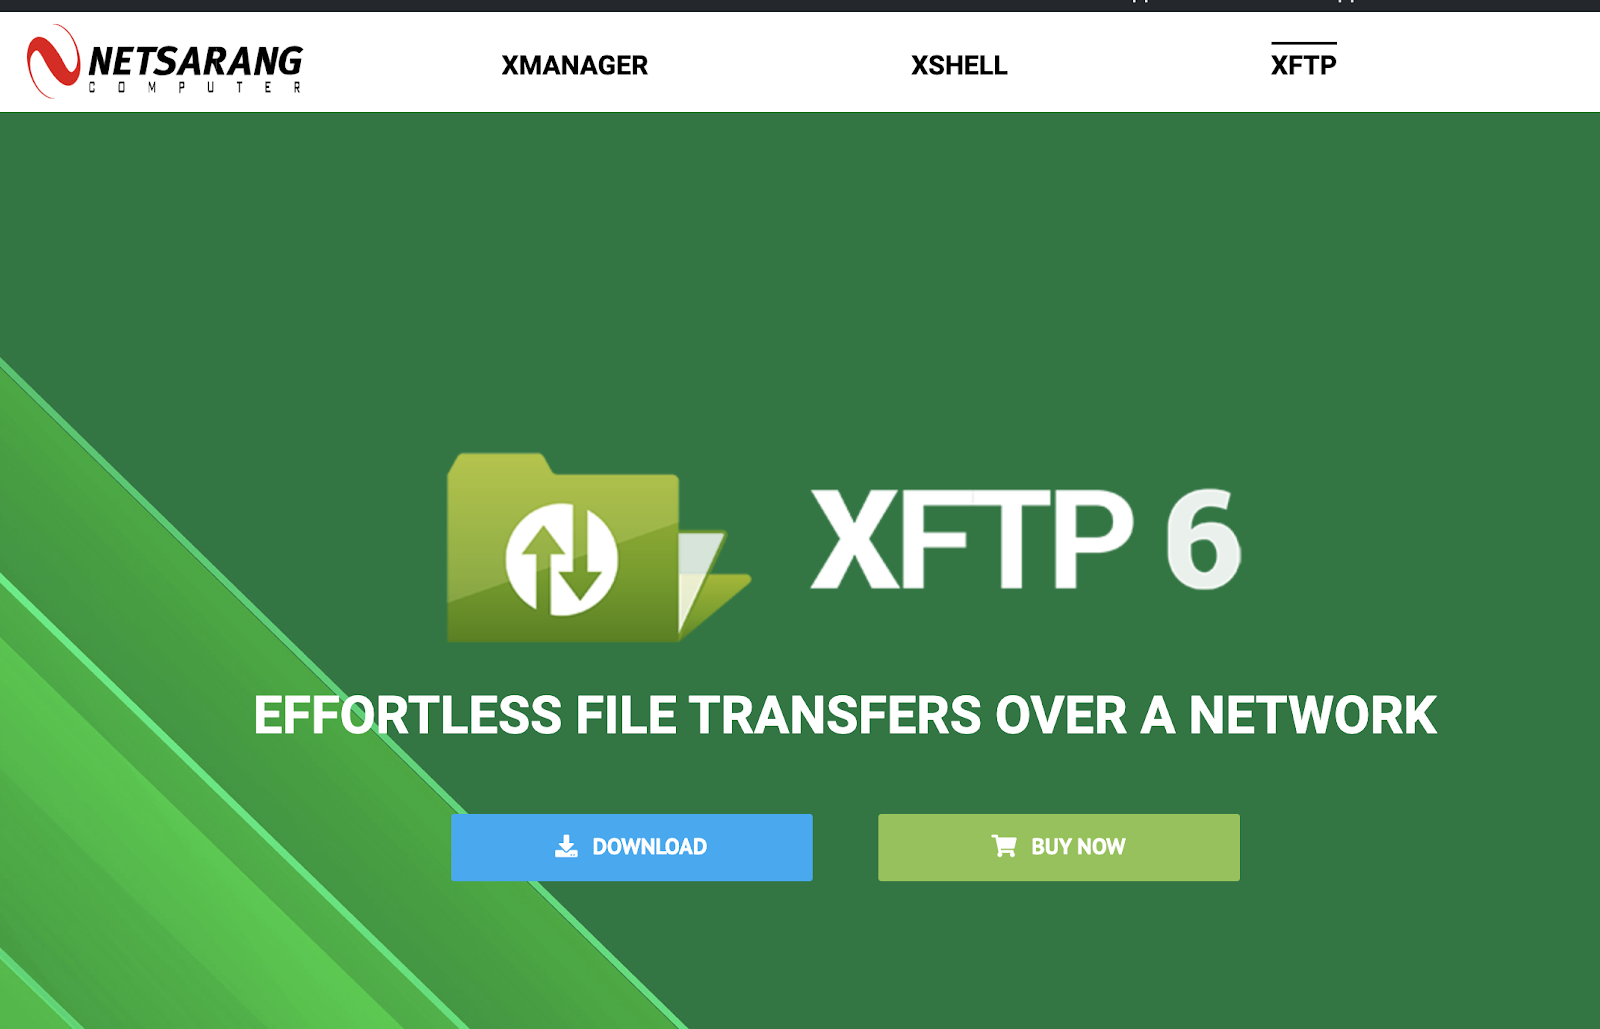 Netsarang XFTP 6 download page